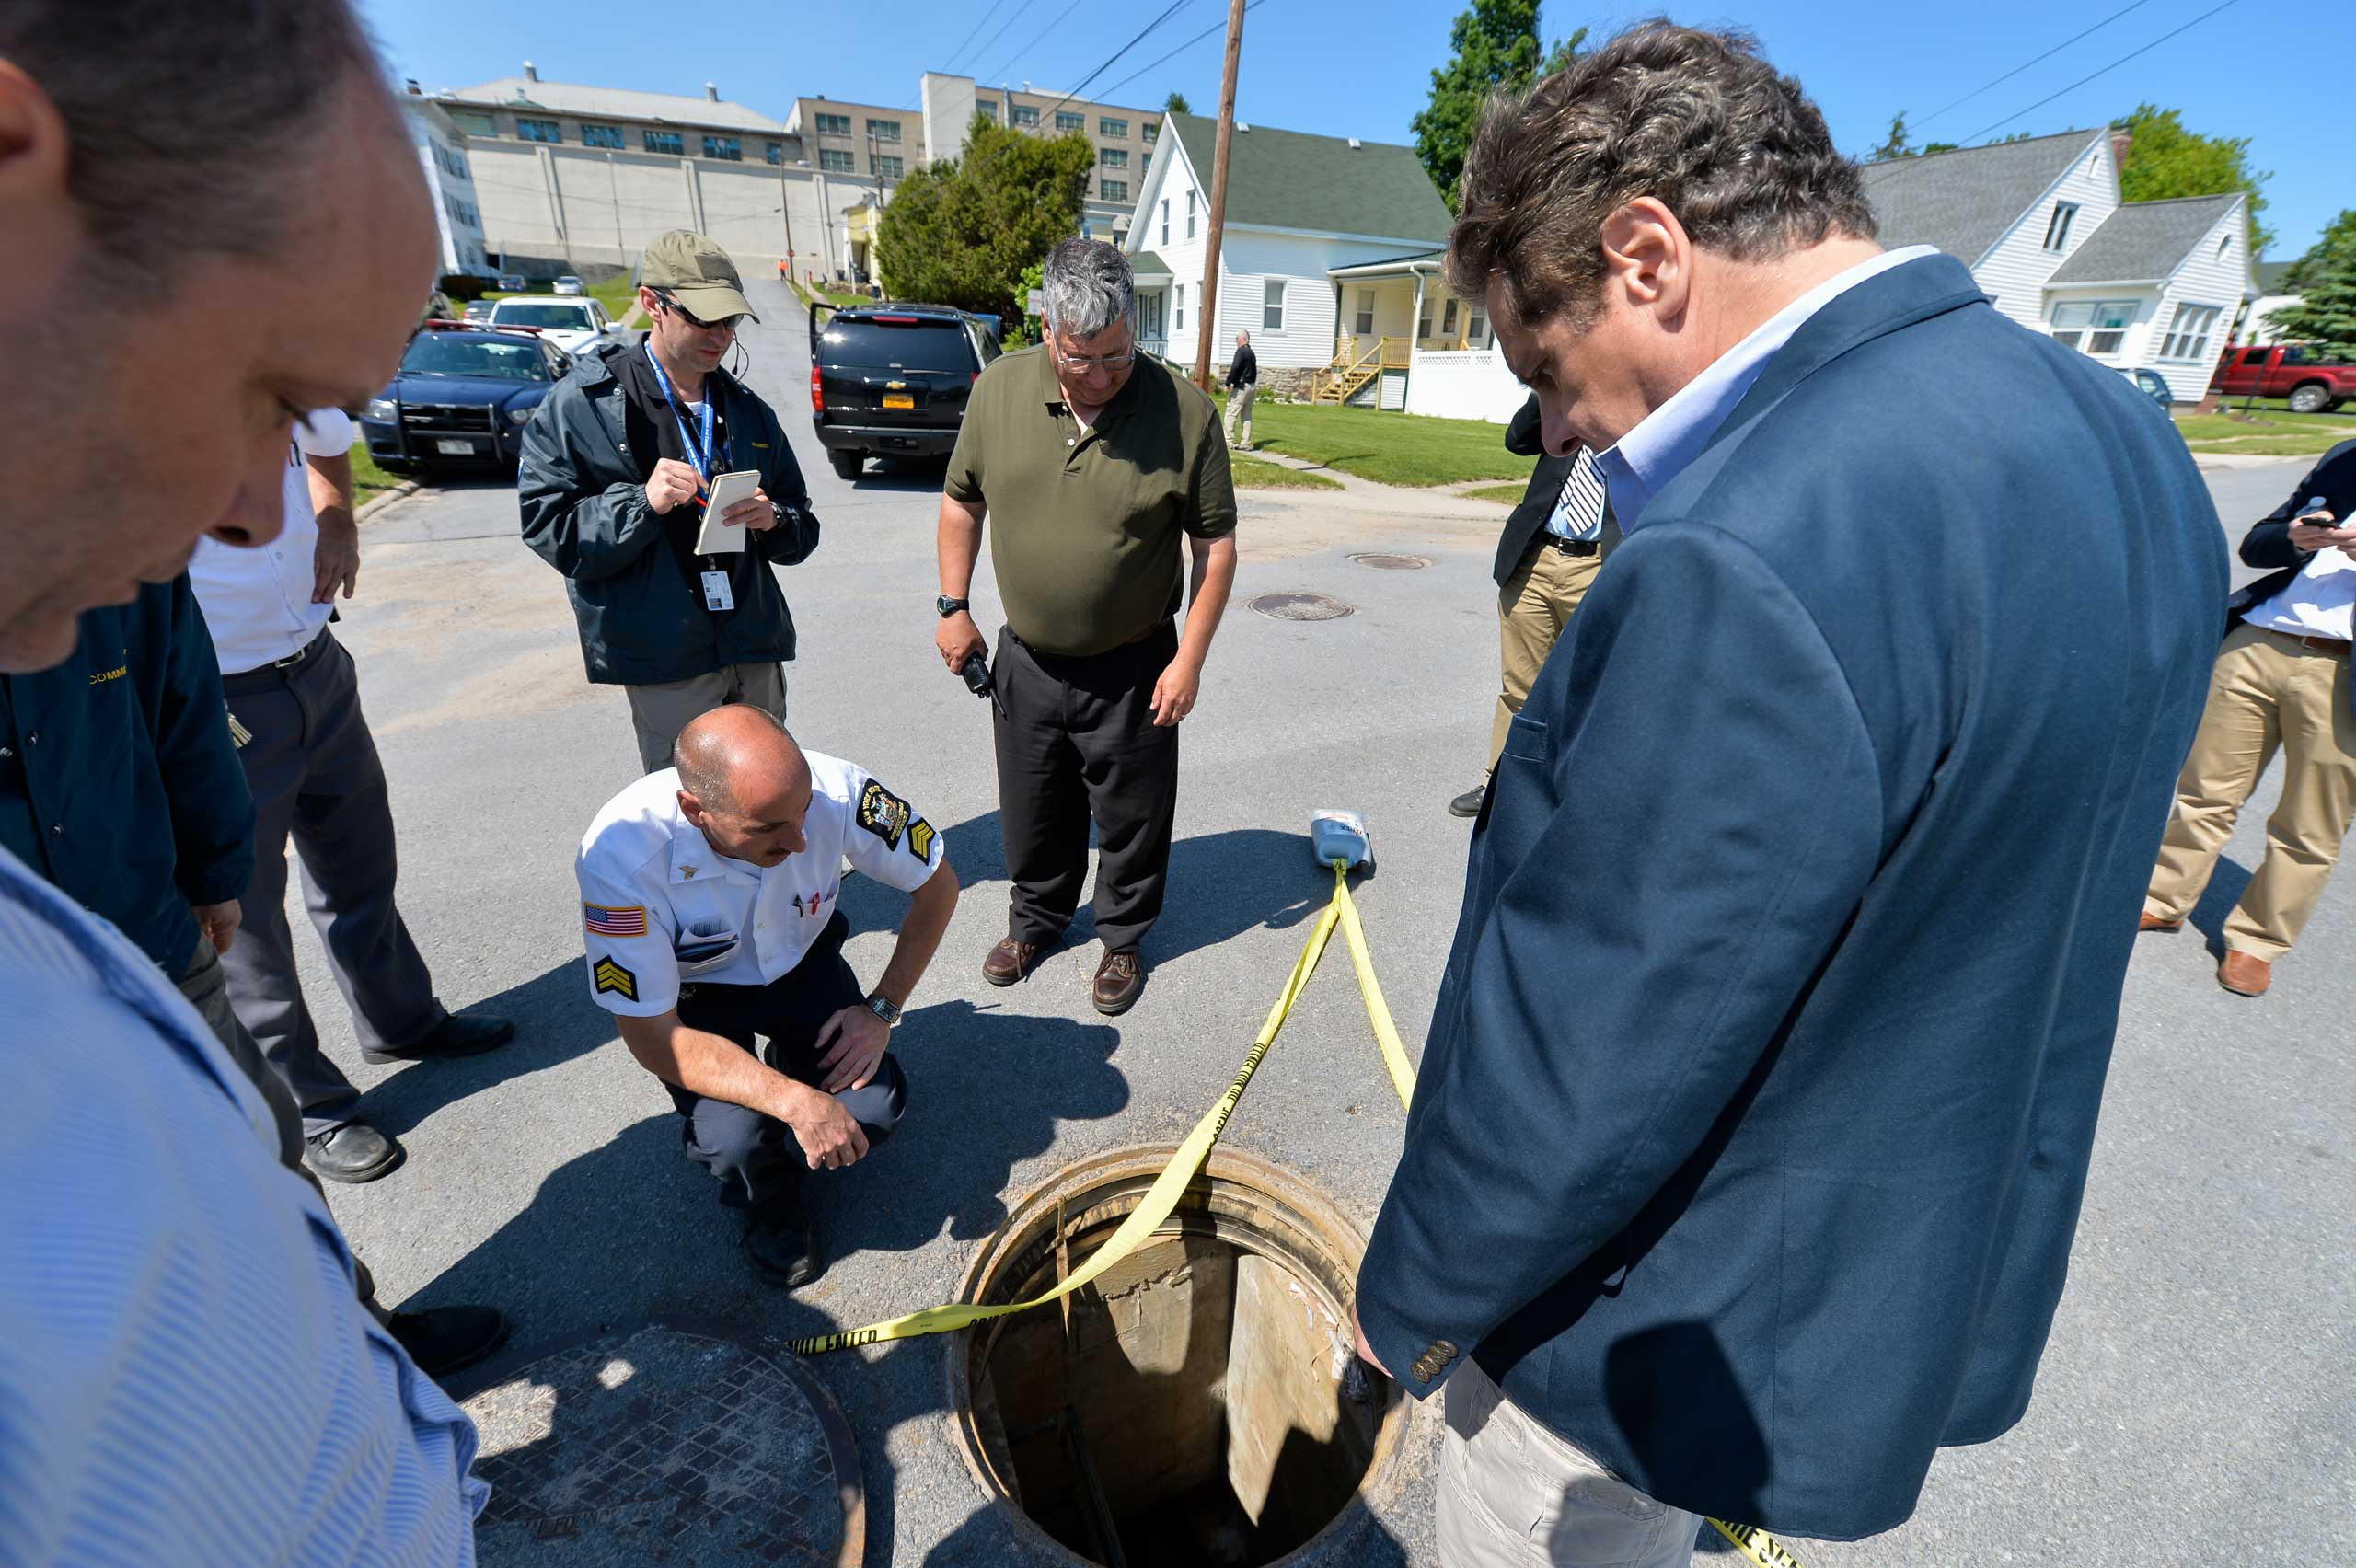 Gov. Andrew Cuomo surveys the manhole where two prisoners resurfaced after escaping from the Clinton Correctional Facility in Dannemora, N.Y. on June 6, 2015.